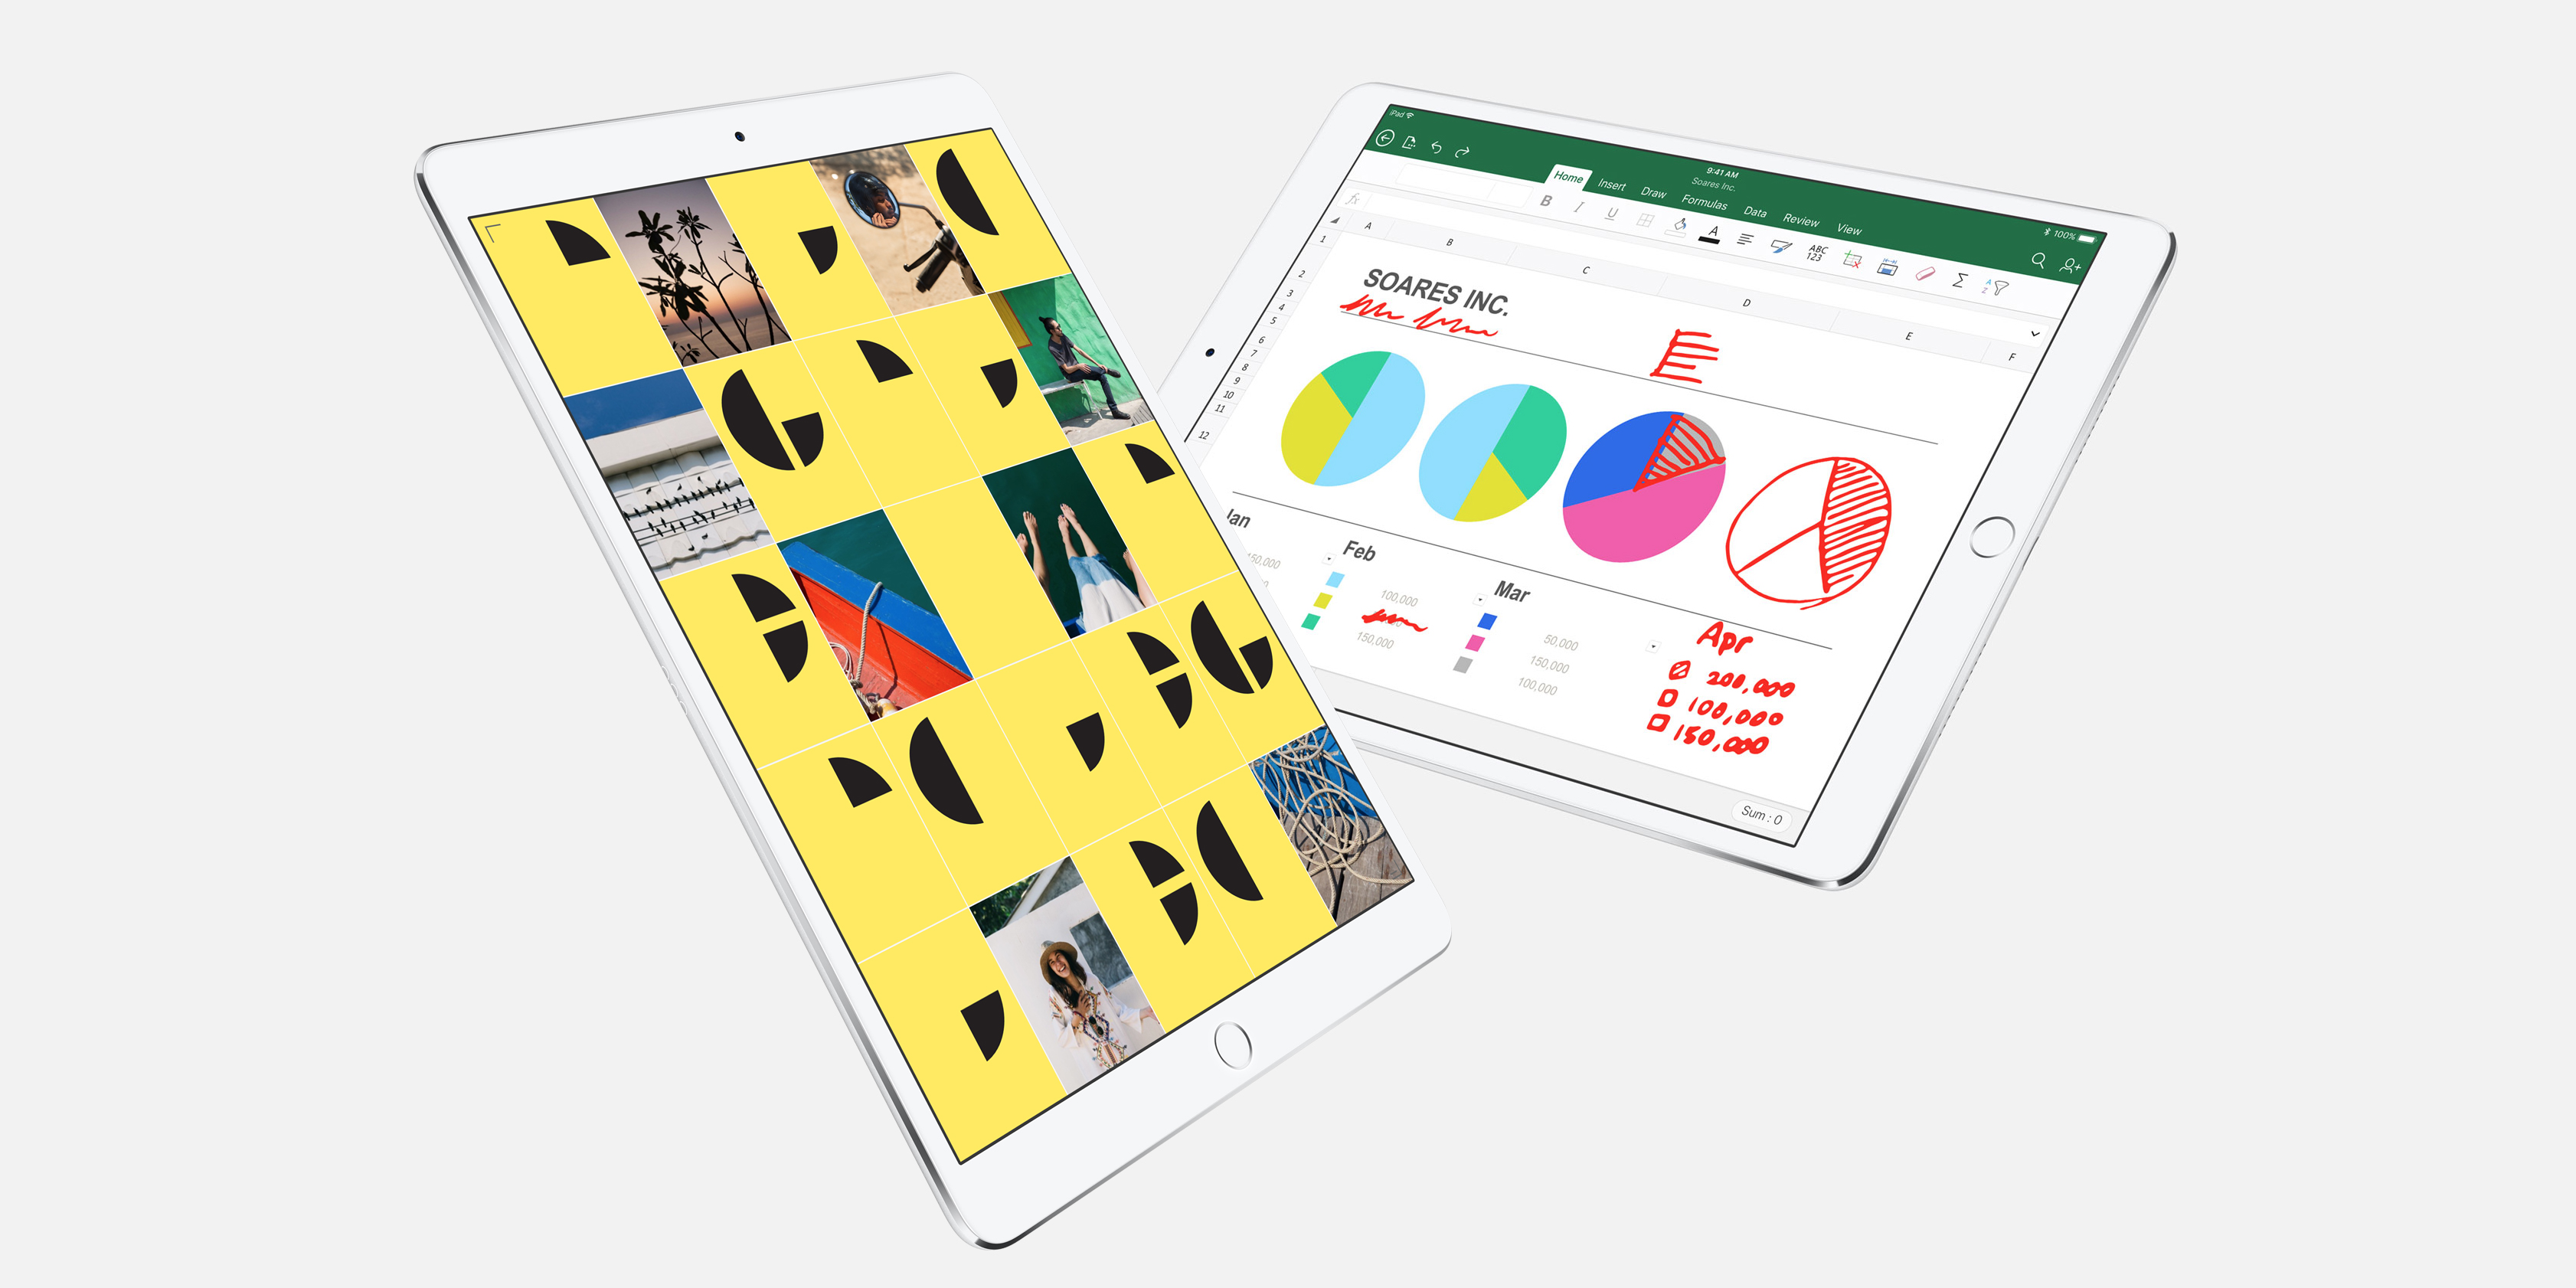 Take up $280 off Apple's previous generation iPad Pro (tax savings select states)